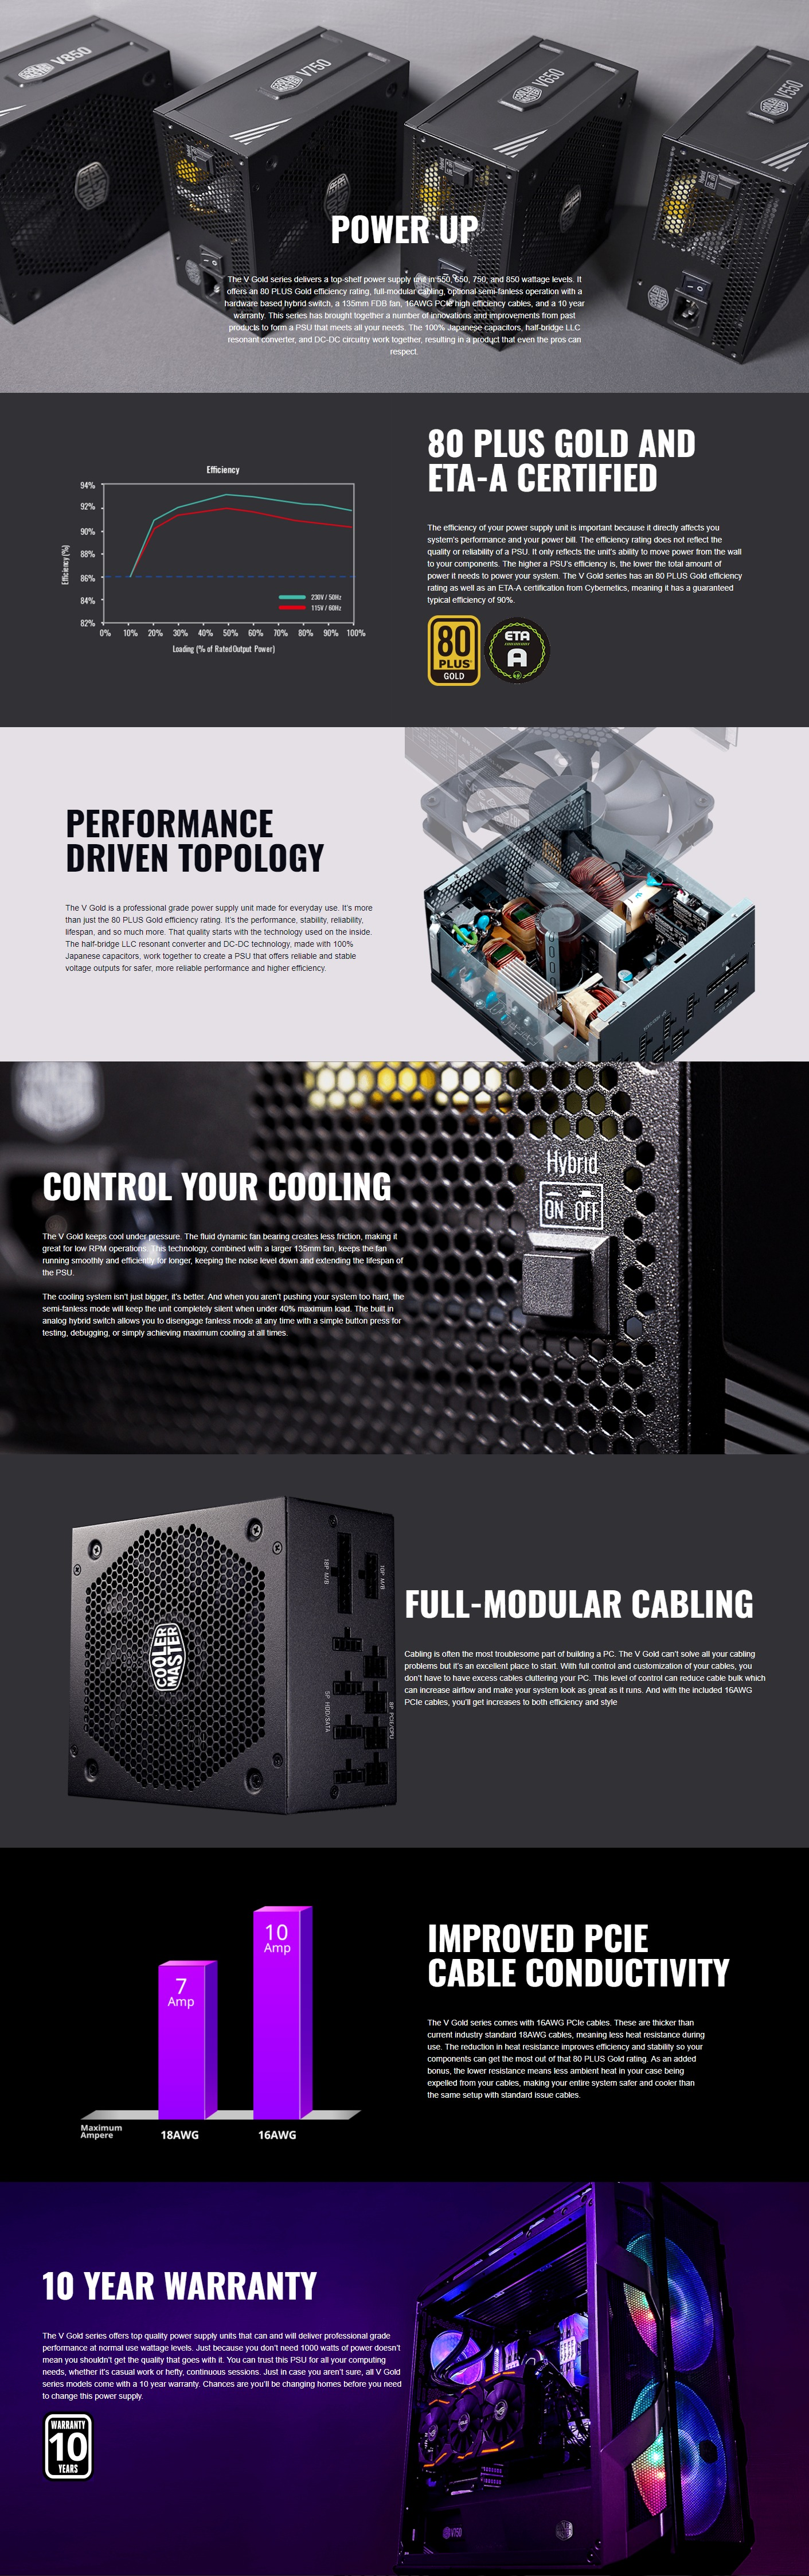 A large marketing image providing additional information about the product Cooler Master V 750W 80PLUS Gold Full Modular Power Supply - Additional alt info not provided